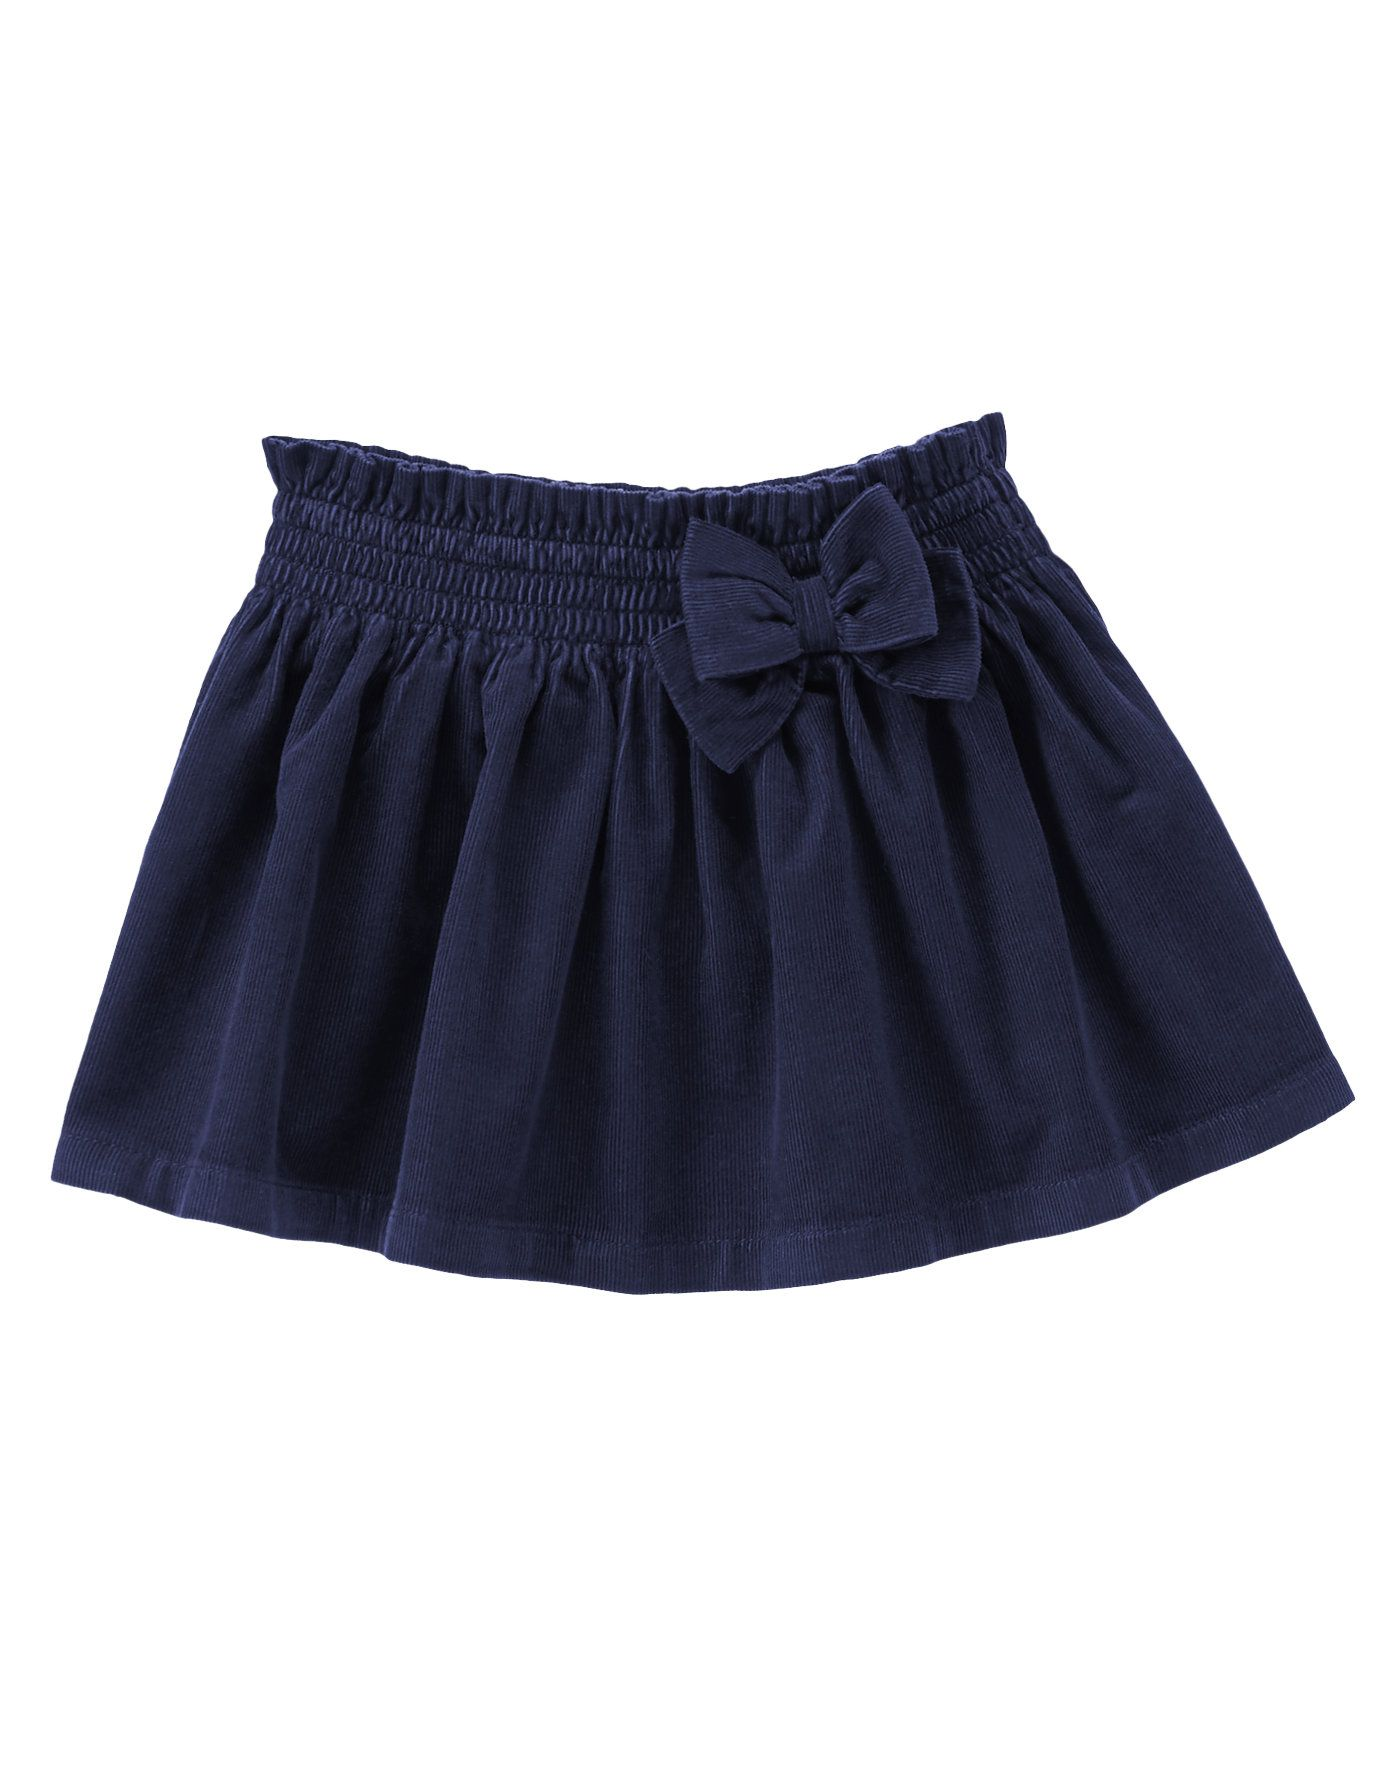 Pull On Corduroy Skirt at Gymboree (Gymboree 3m 5T) | Moda